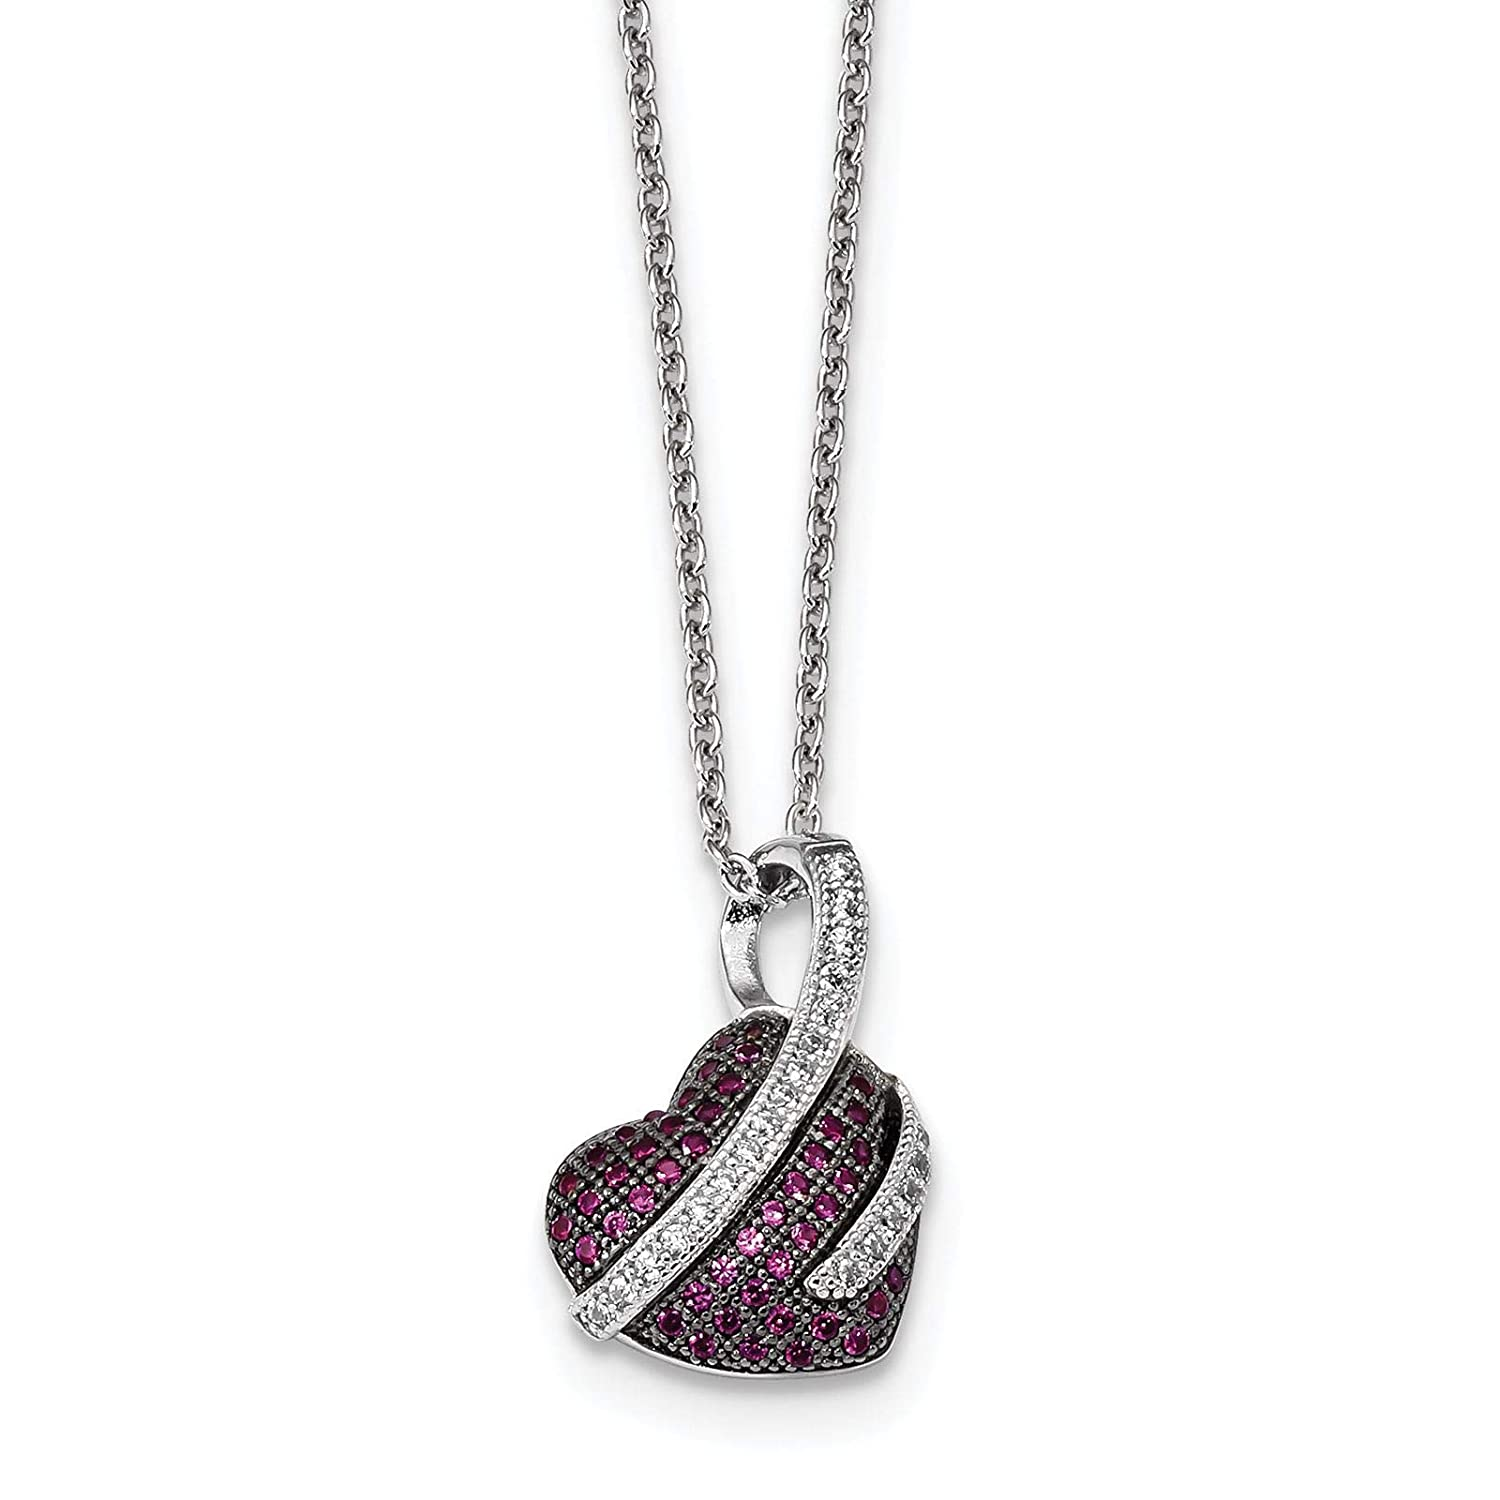 2 Extender Brilliant Embers Sterling Silver Rhodium-plated Pink /& White CZ Heart Pendant Necklace 18